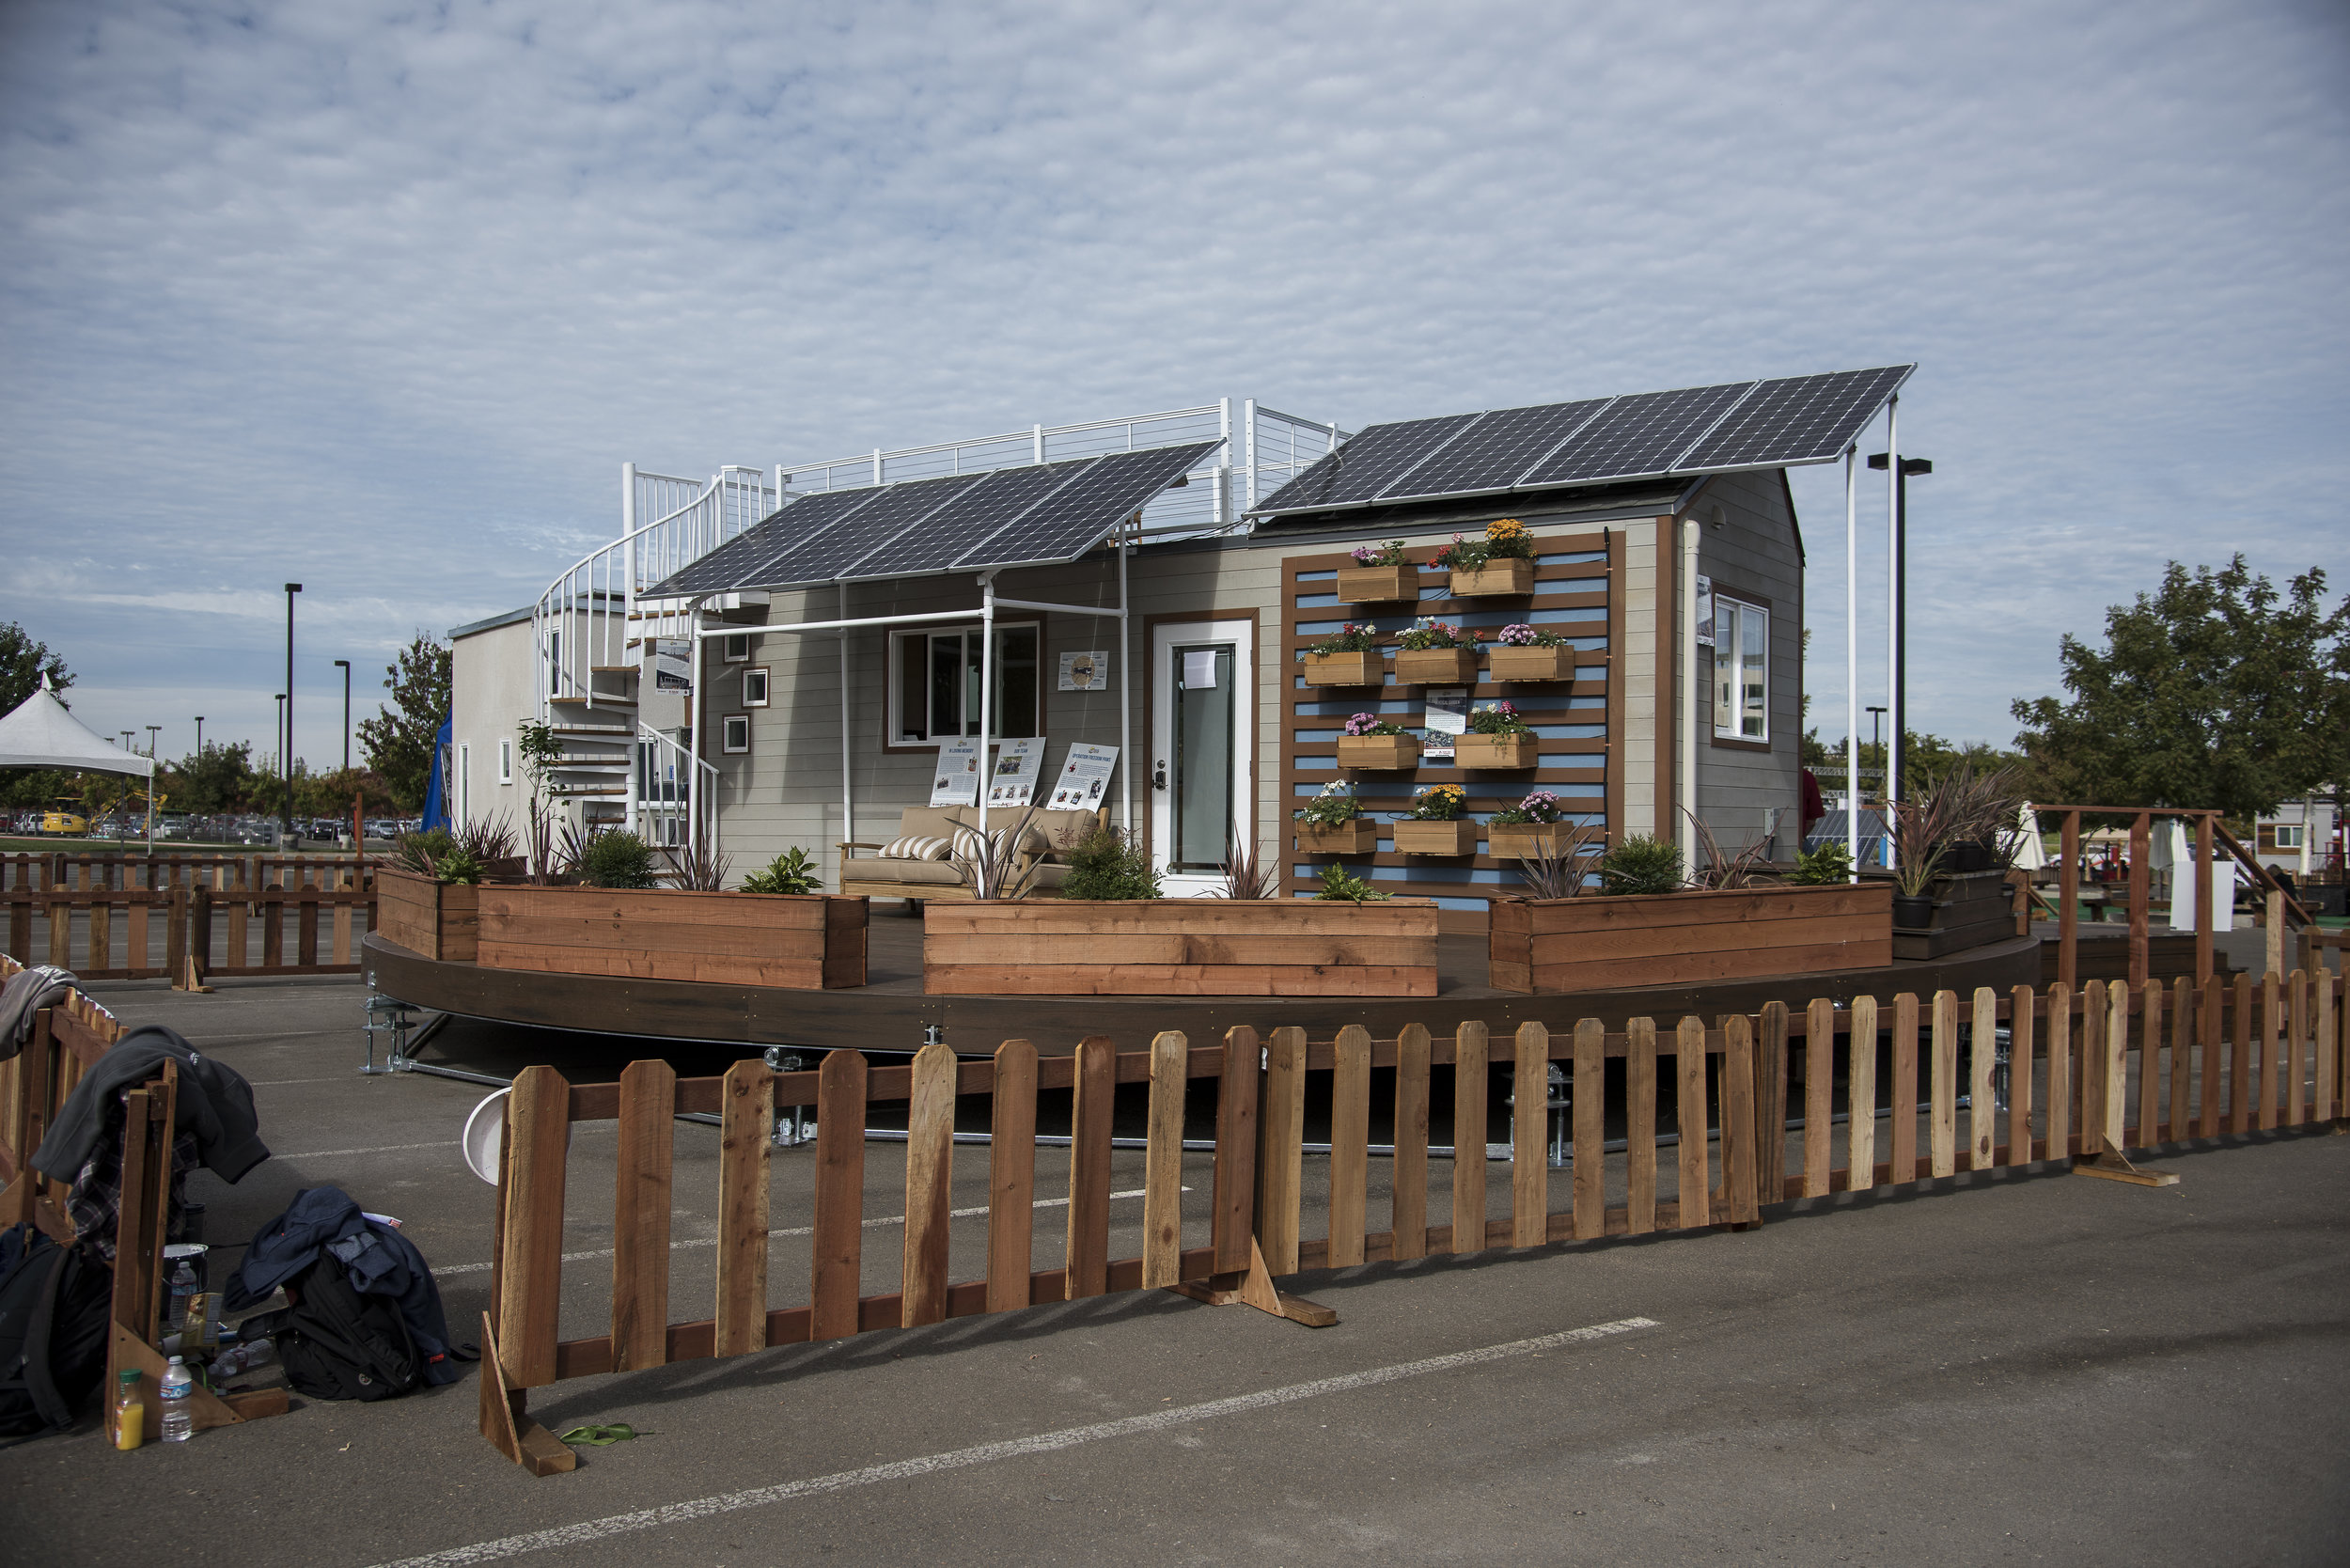 JL161013_4161_0138_TinyHouseCompetition.jpg